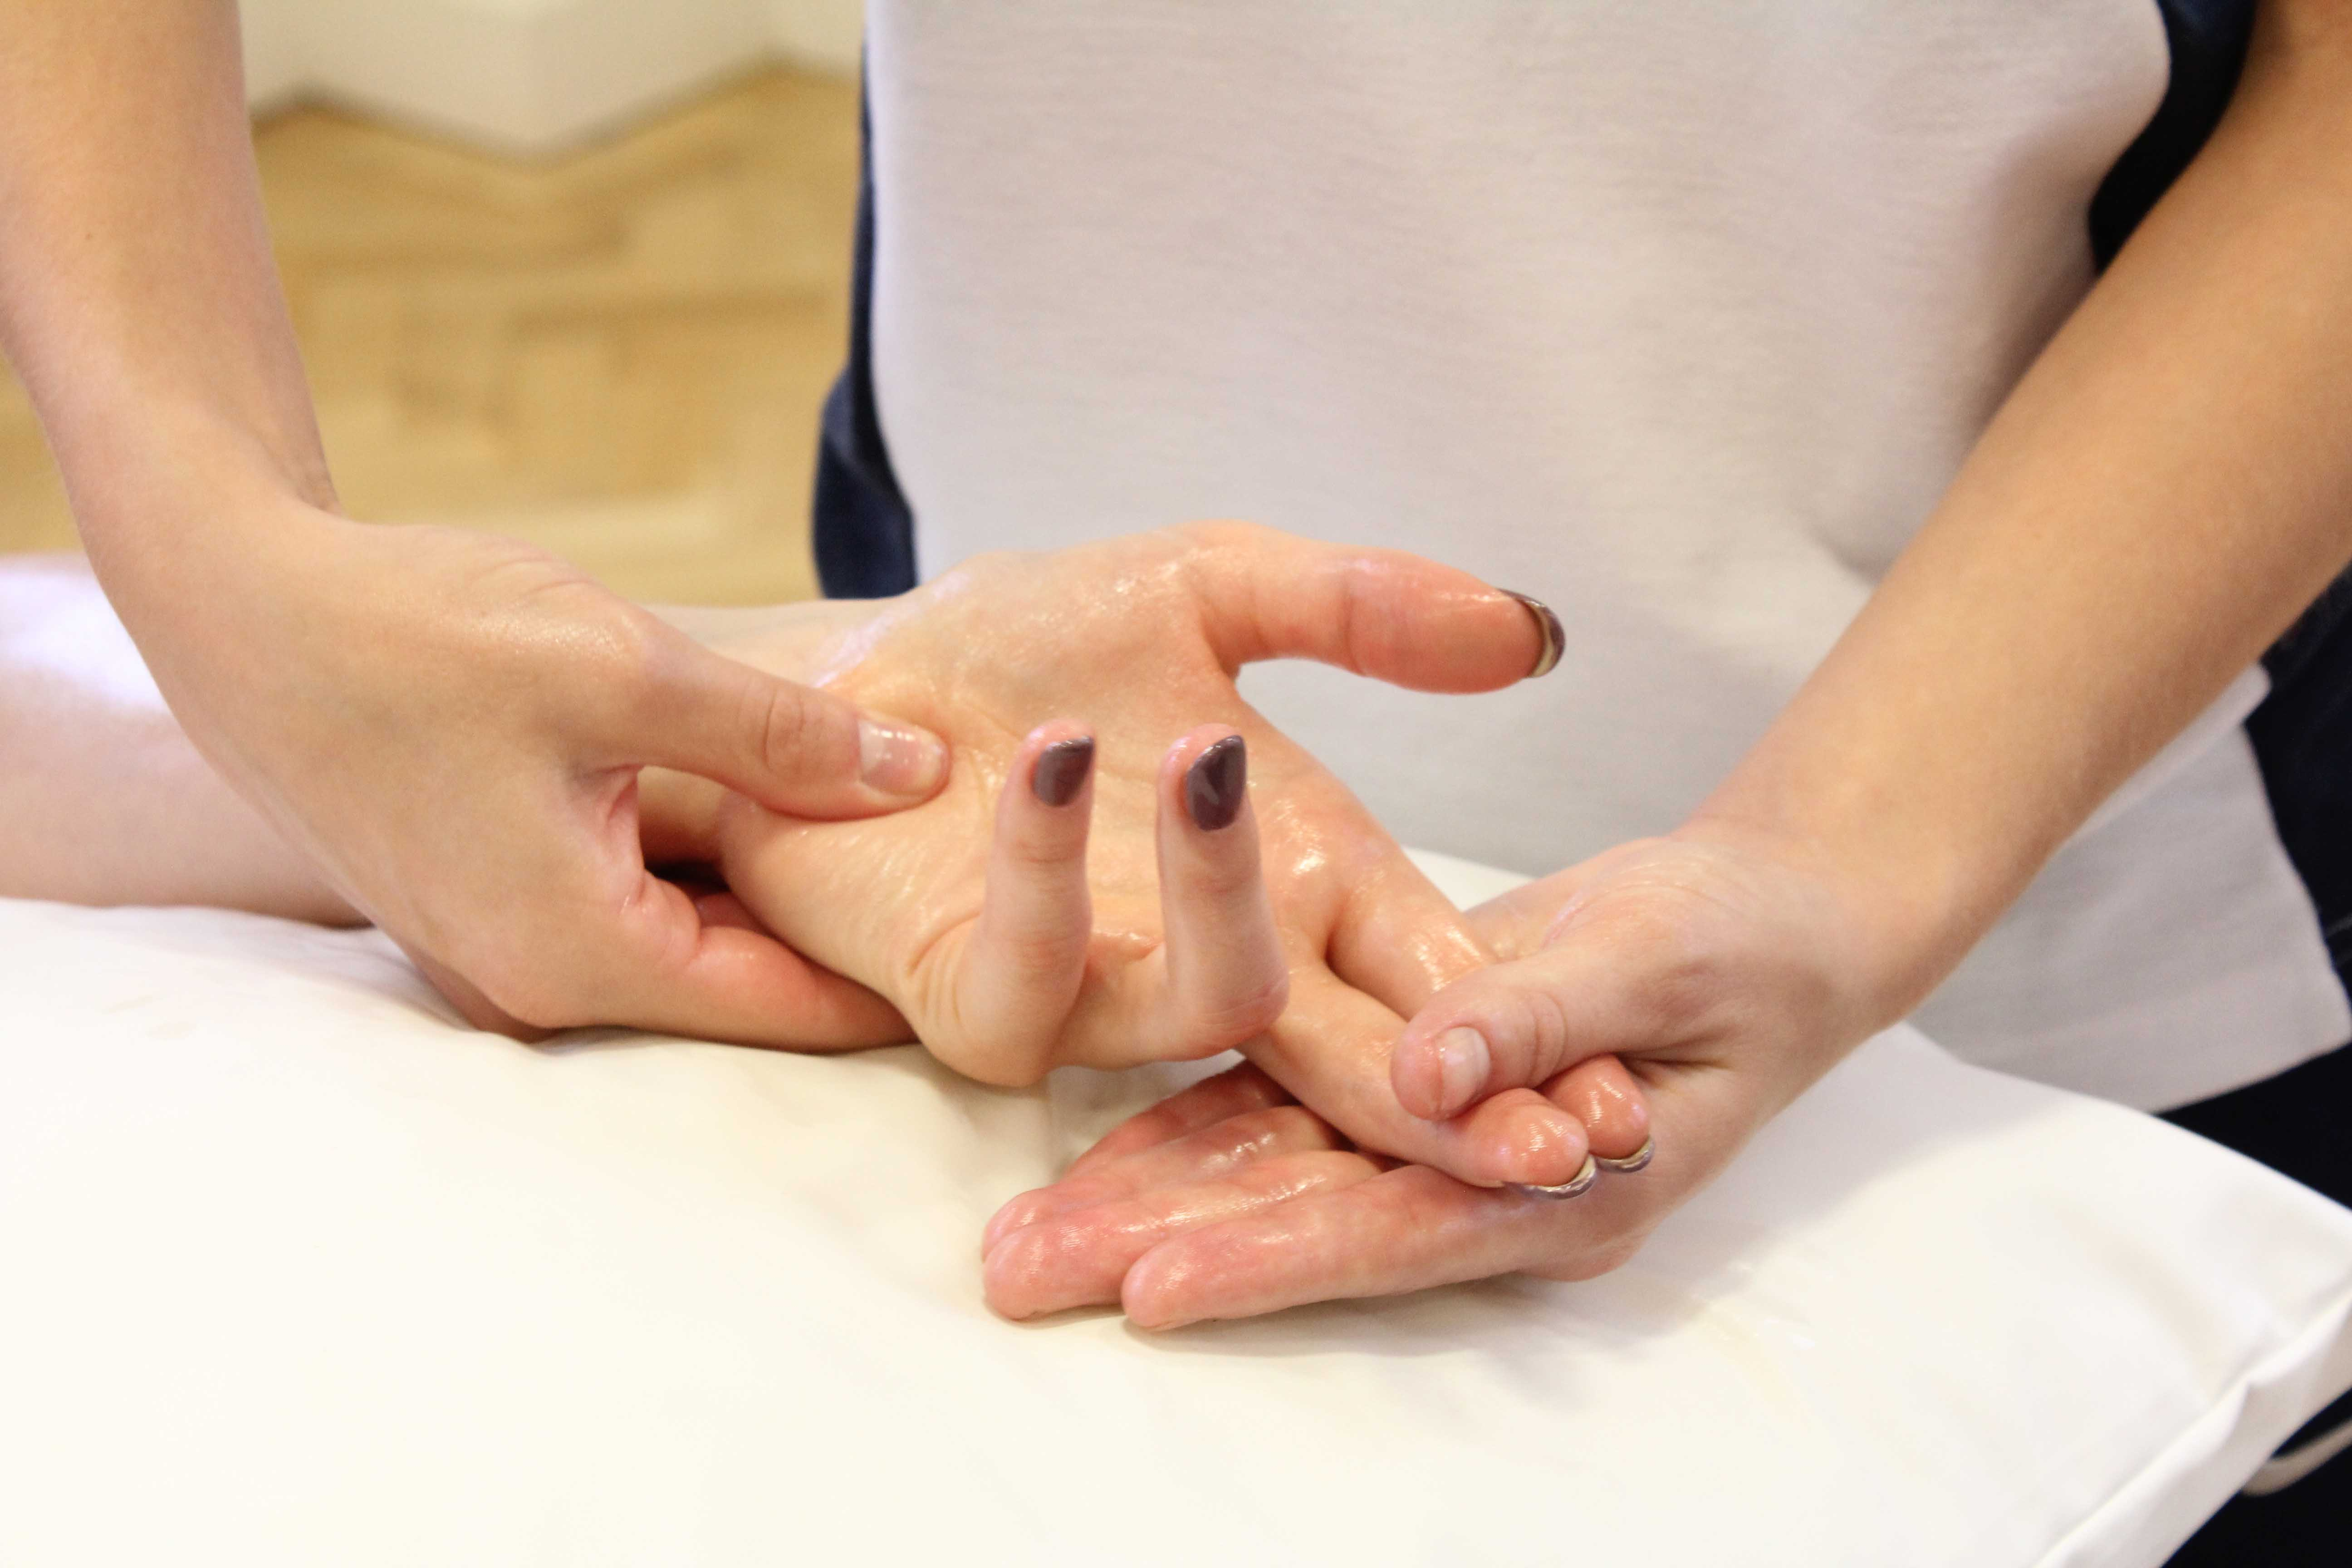 Soft tissue massage and mobilisations of the finger tendons and joints